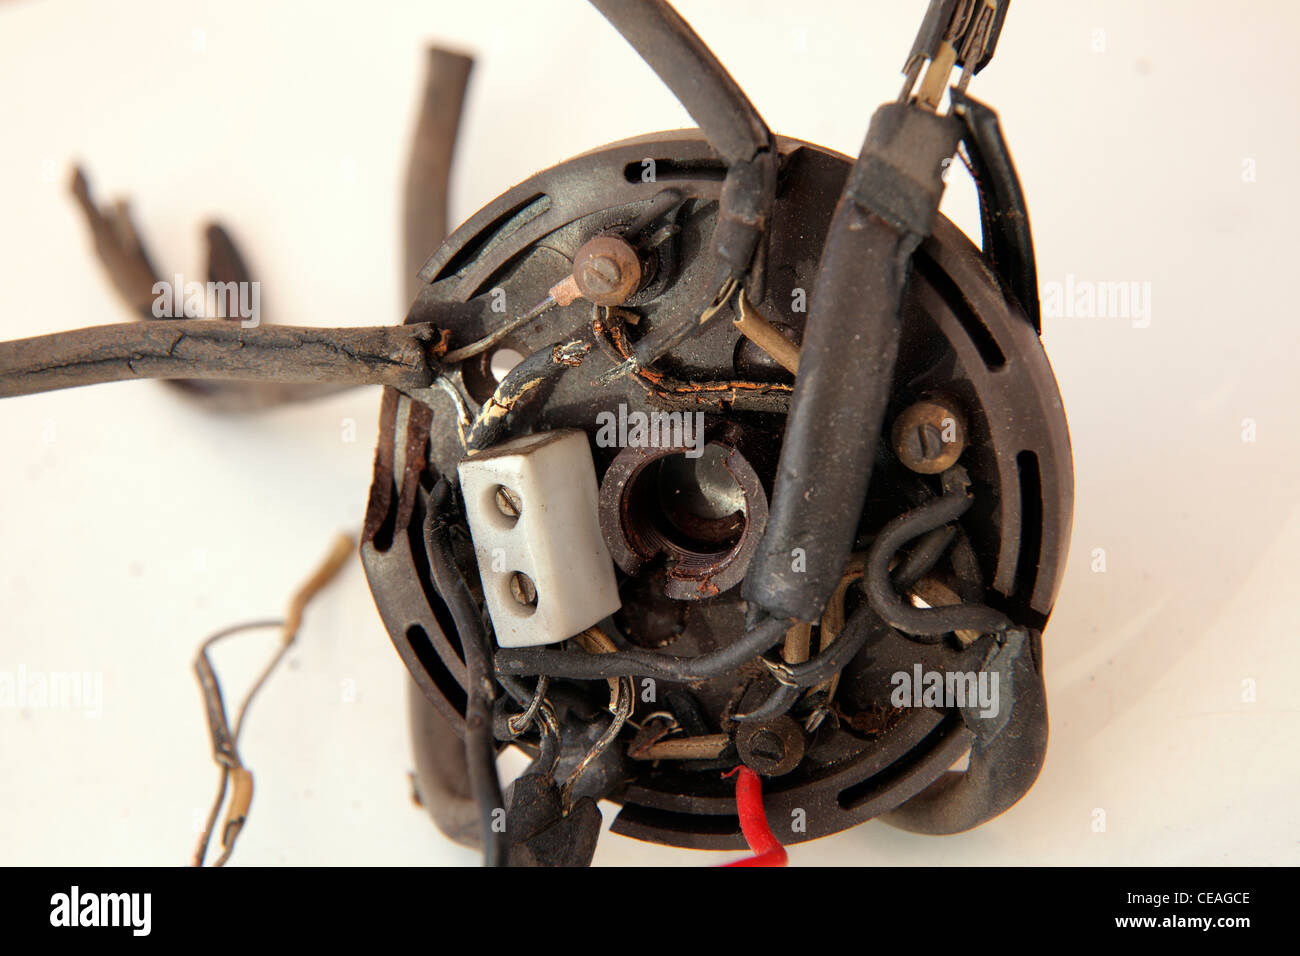 dangerous uk old housing domestic rubber coated wiring with junction rh alamy com Simple Electrical Wire Junction Box Diagrams Extending Electrical Cable Junction Box